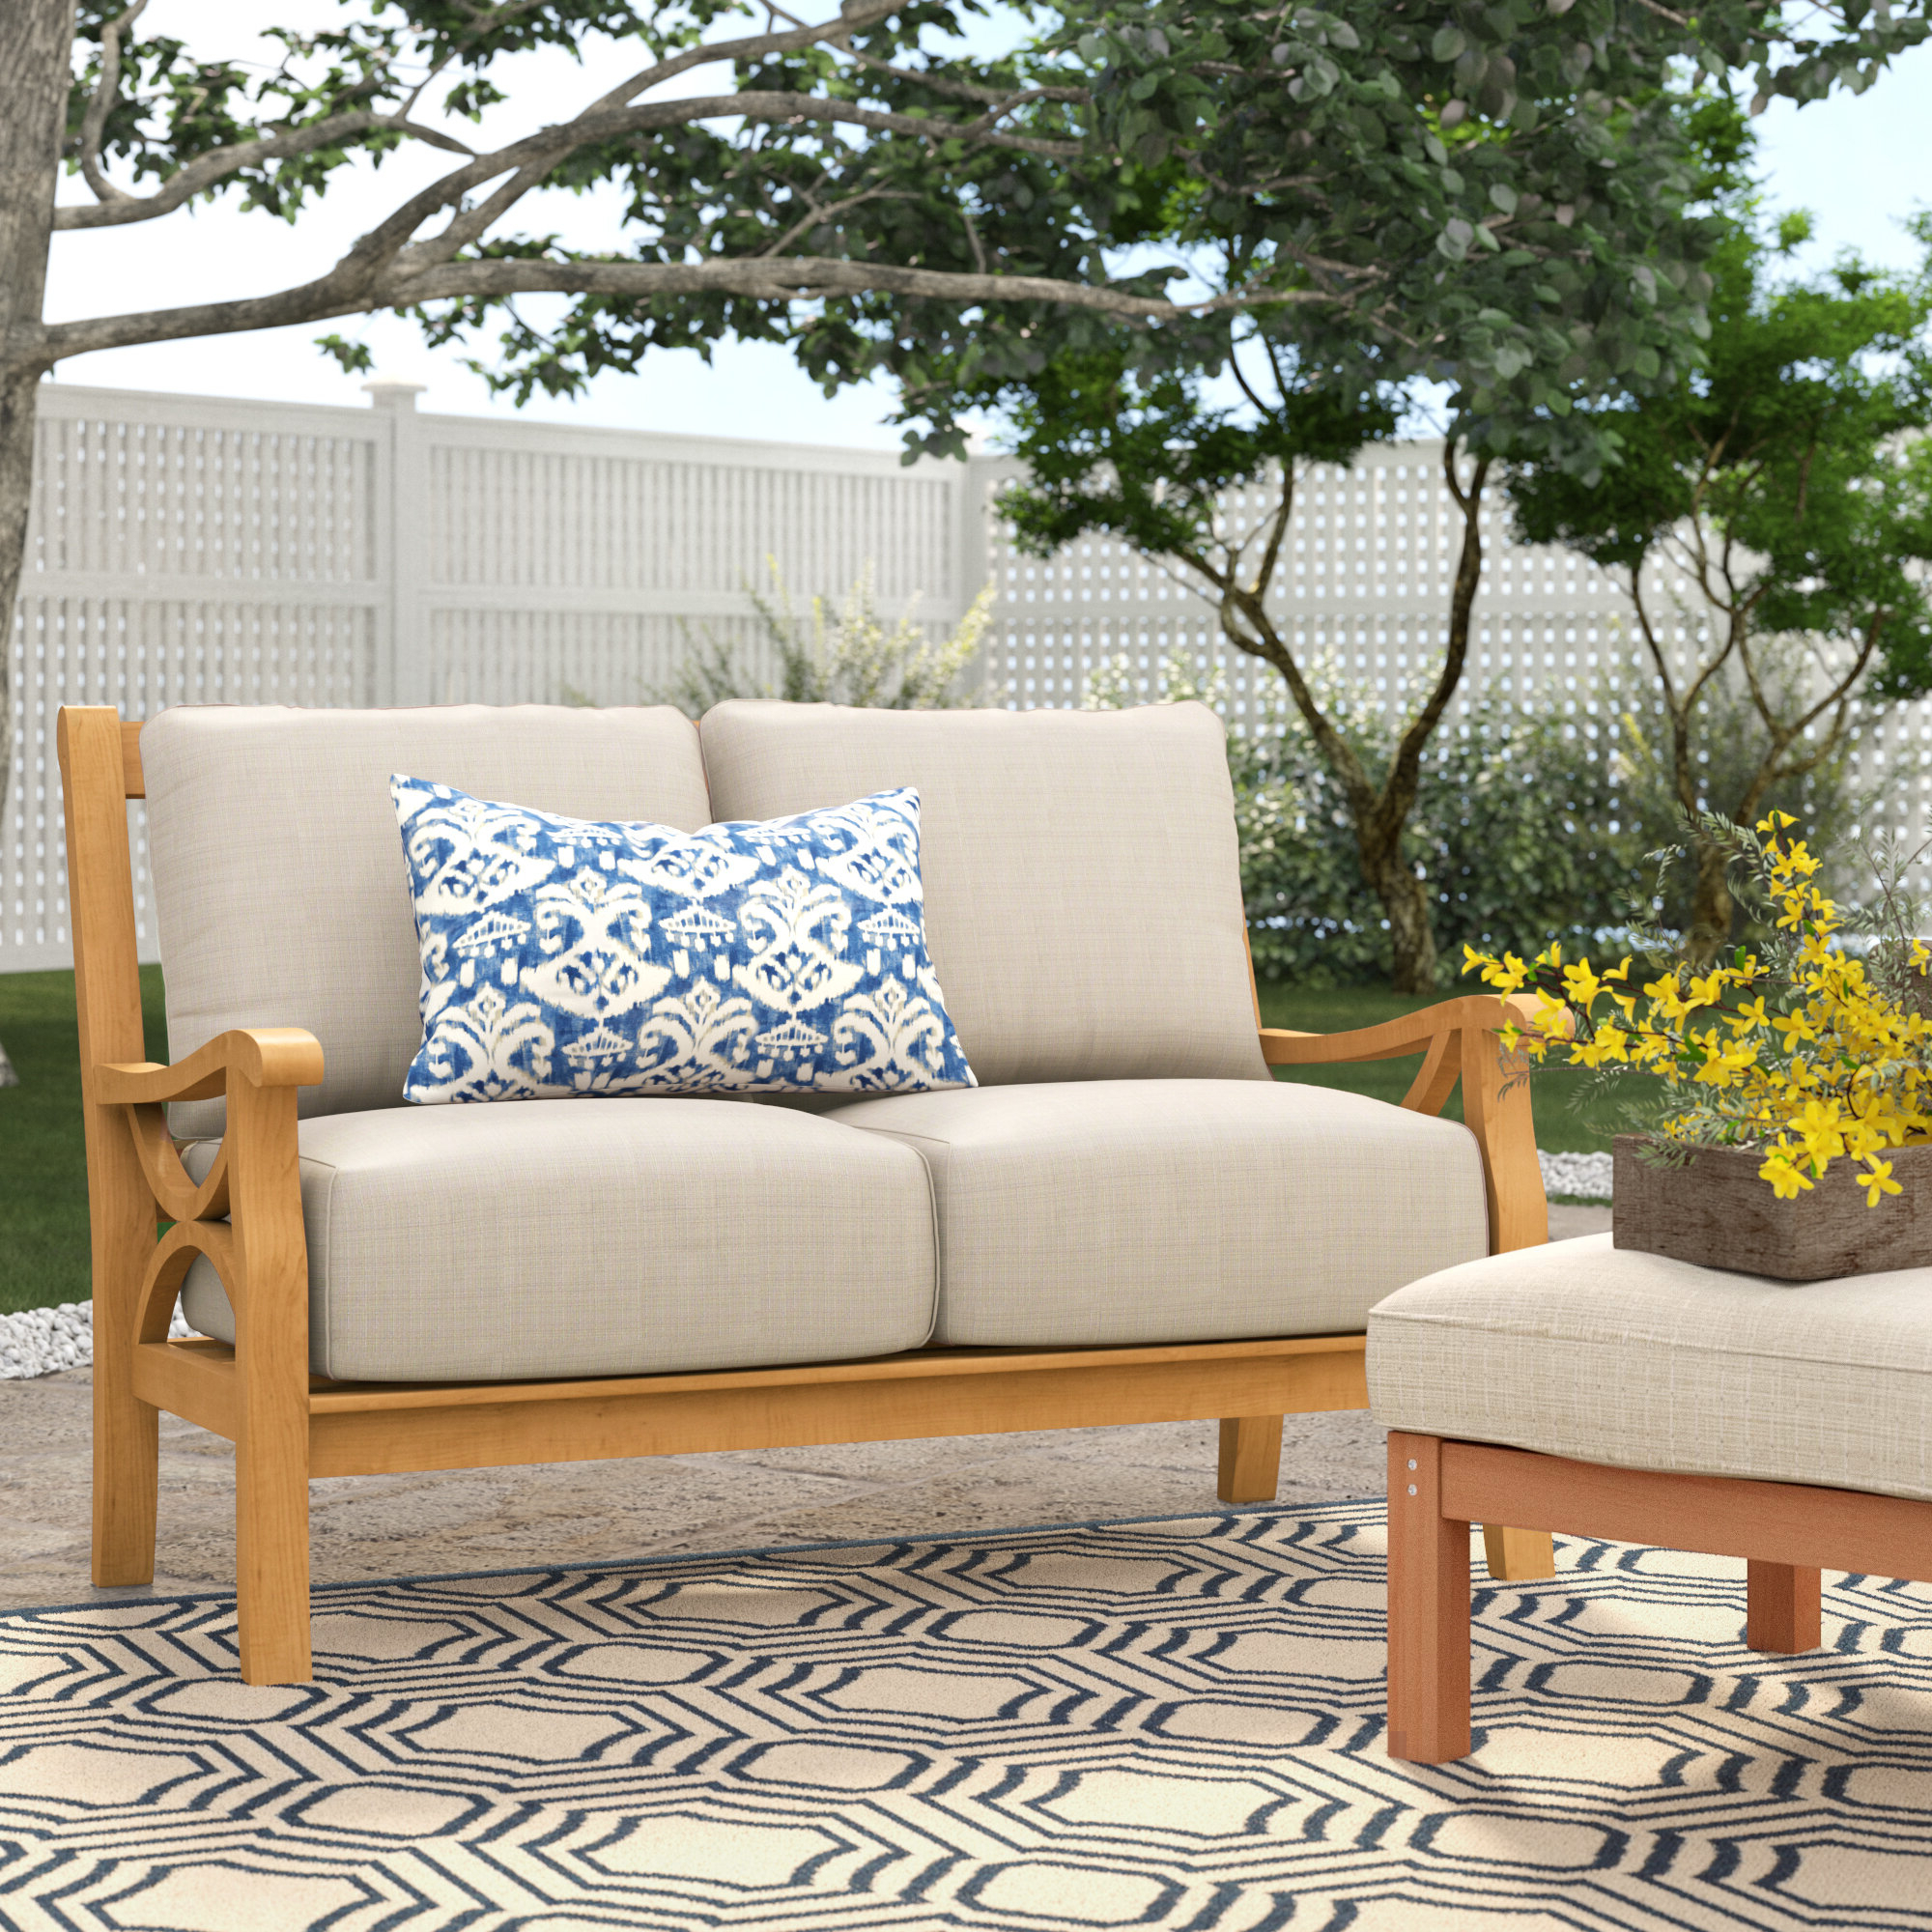 Most Recently Released Lakeland Teak Loveseats With Cushions Within Brunswick Teak Loveseat With Cushions (View 4 of 20)